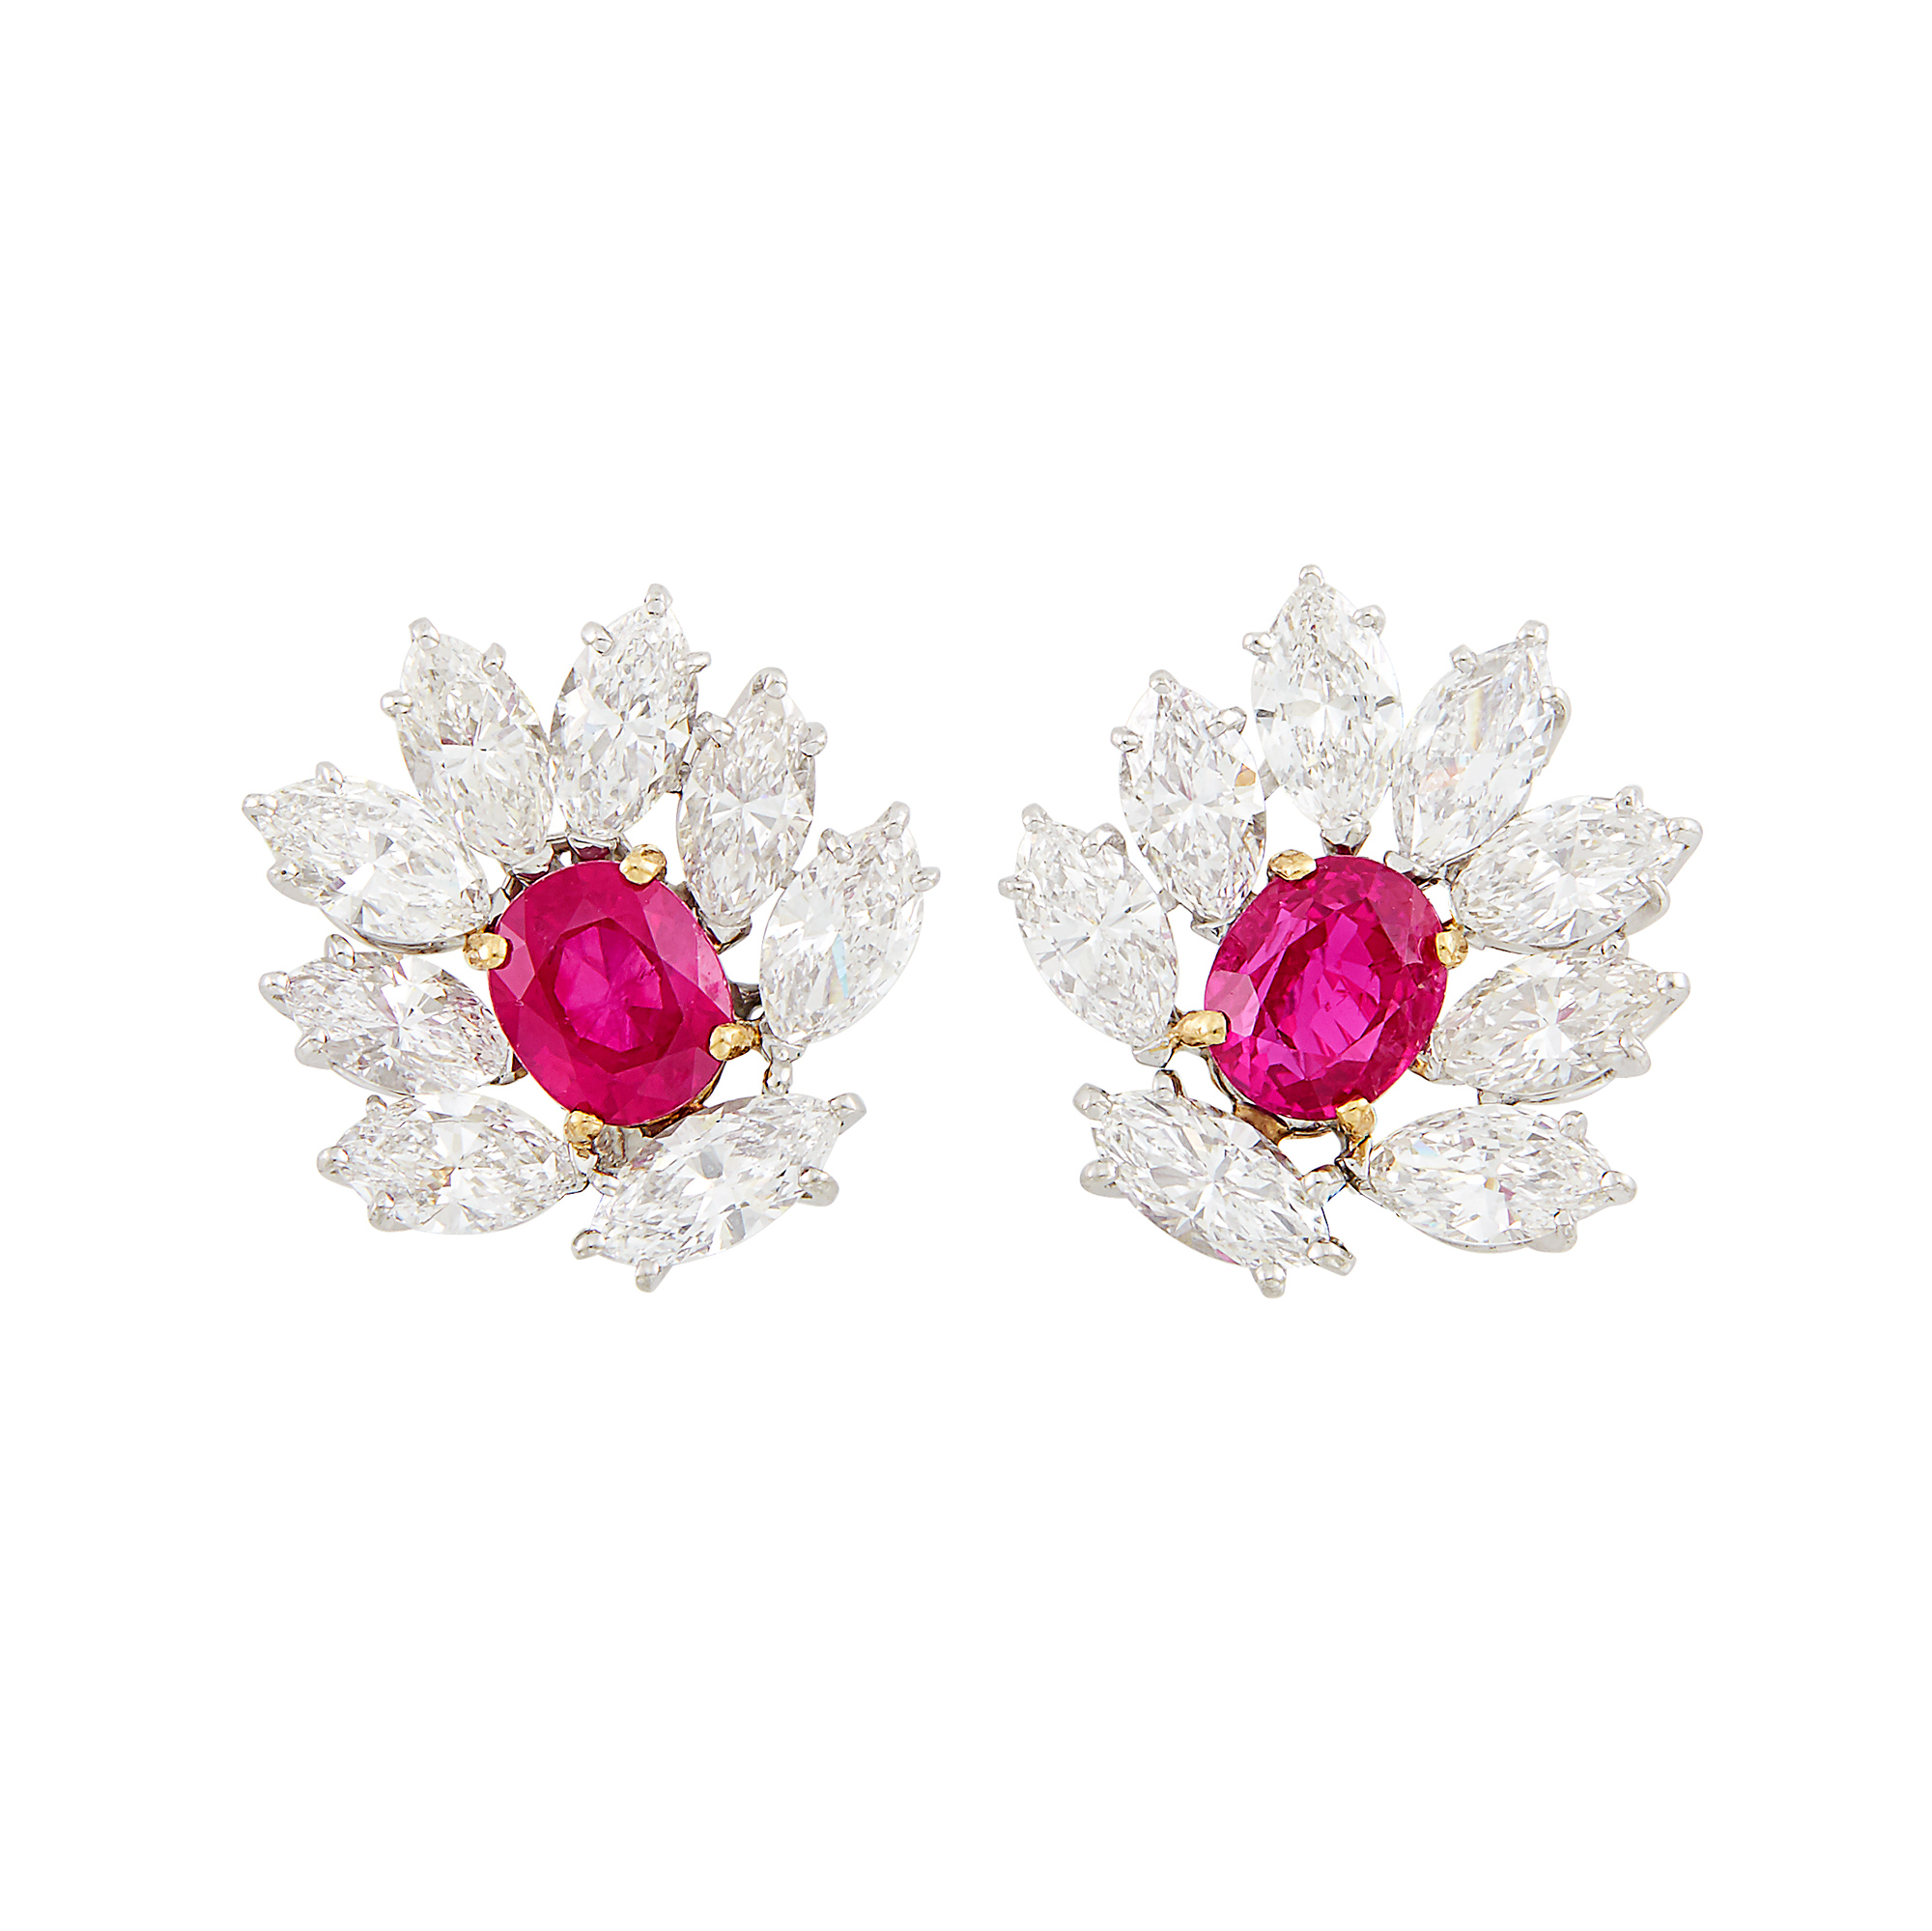 Lot image - Pair of Platinum, Gold, Ruby and Diamond Earrings